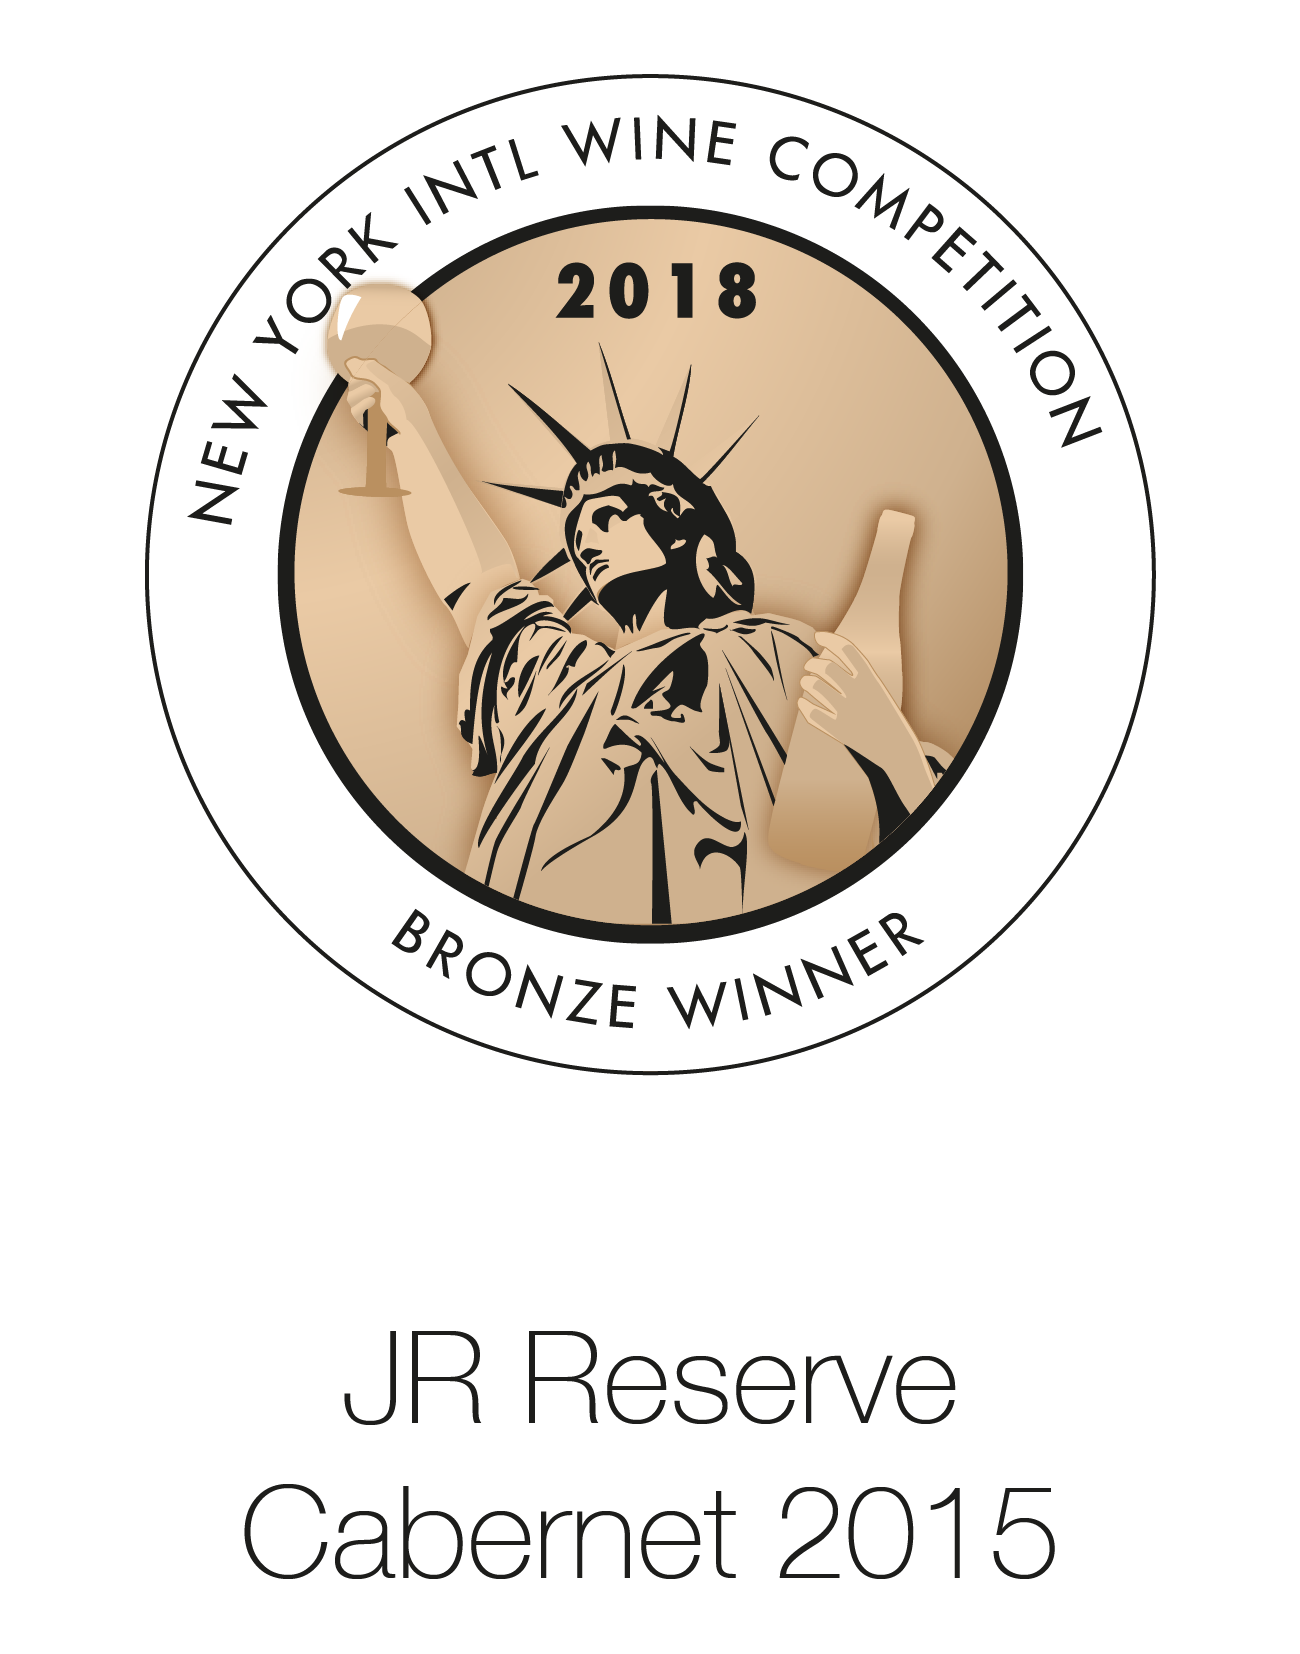 JR Reserve - Cabernet Sauvignon 2015 - New York Intl Wine Competition 2018